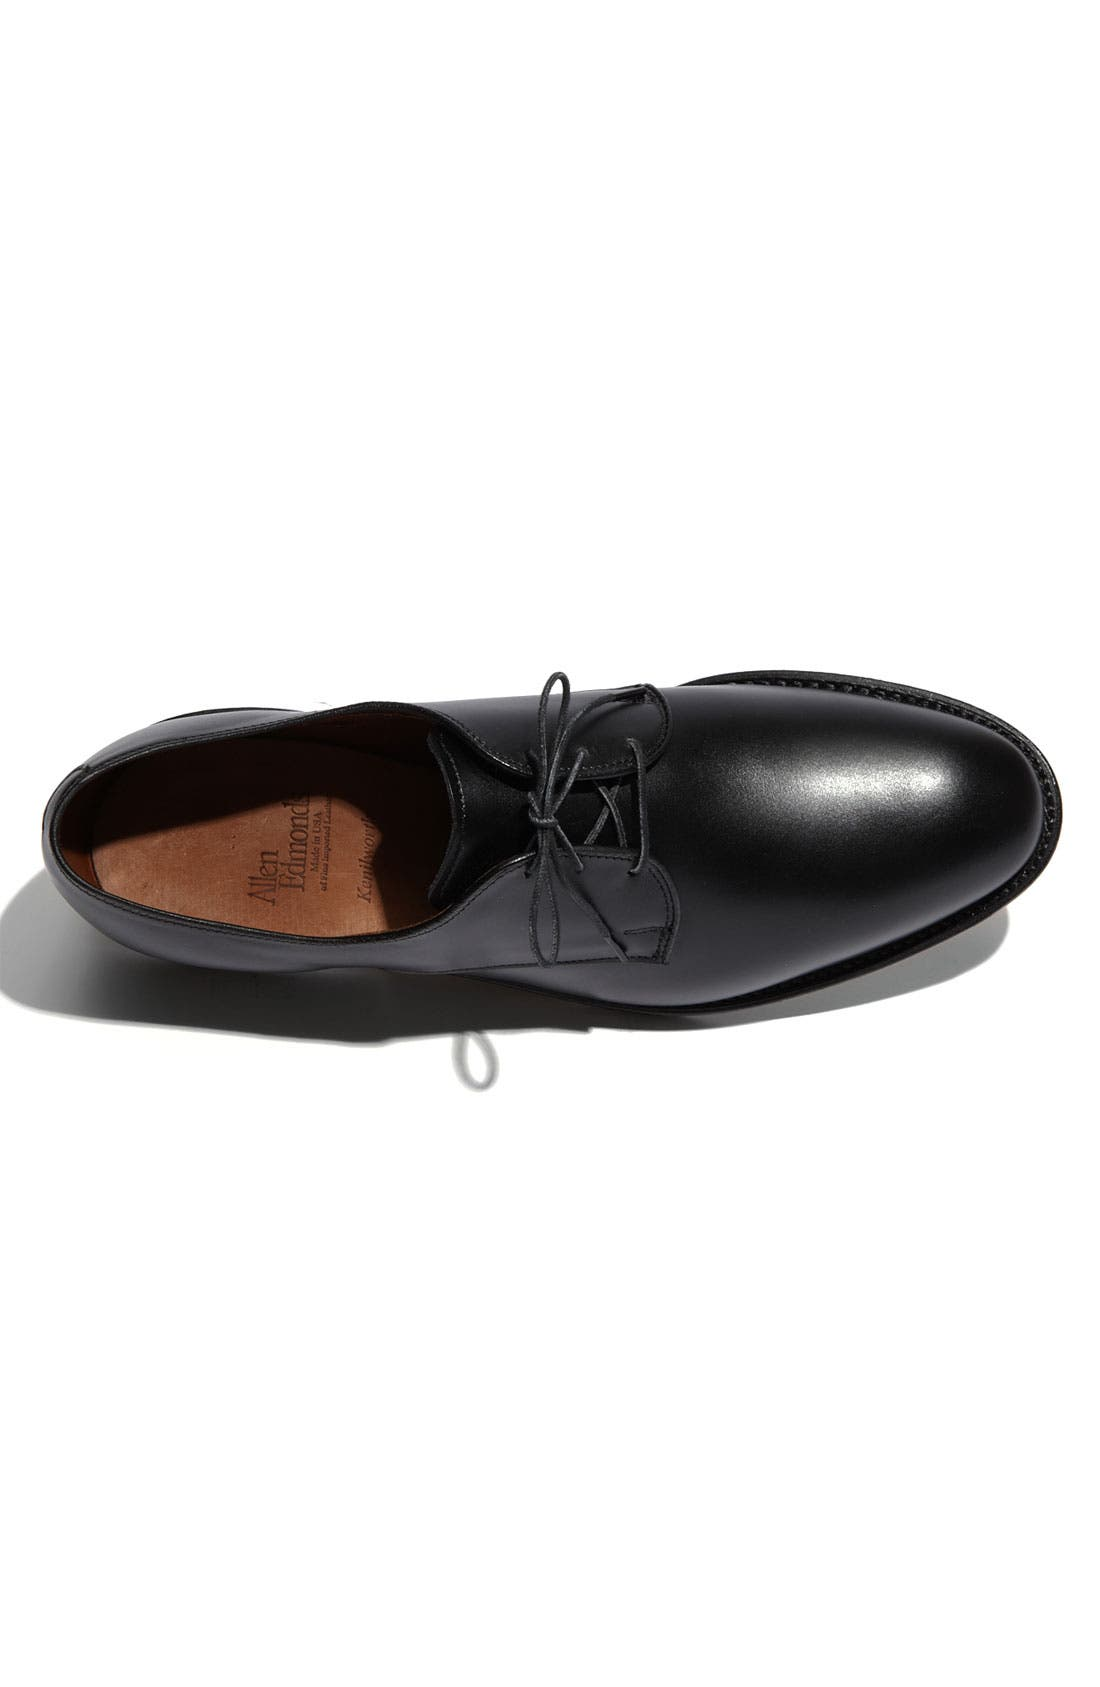 Alternate Image 3  - Allen Edmonds 'Kenilworth' Oxford (Men)